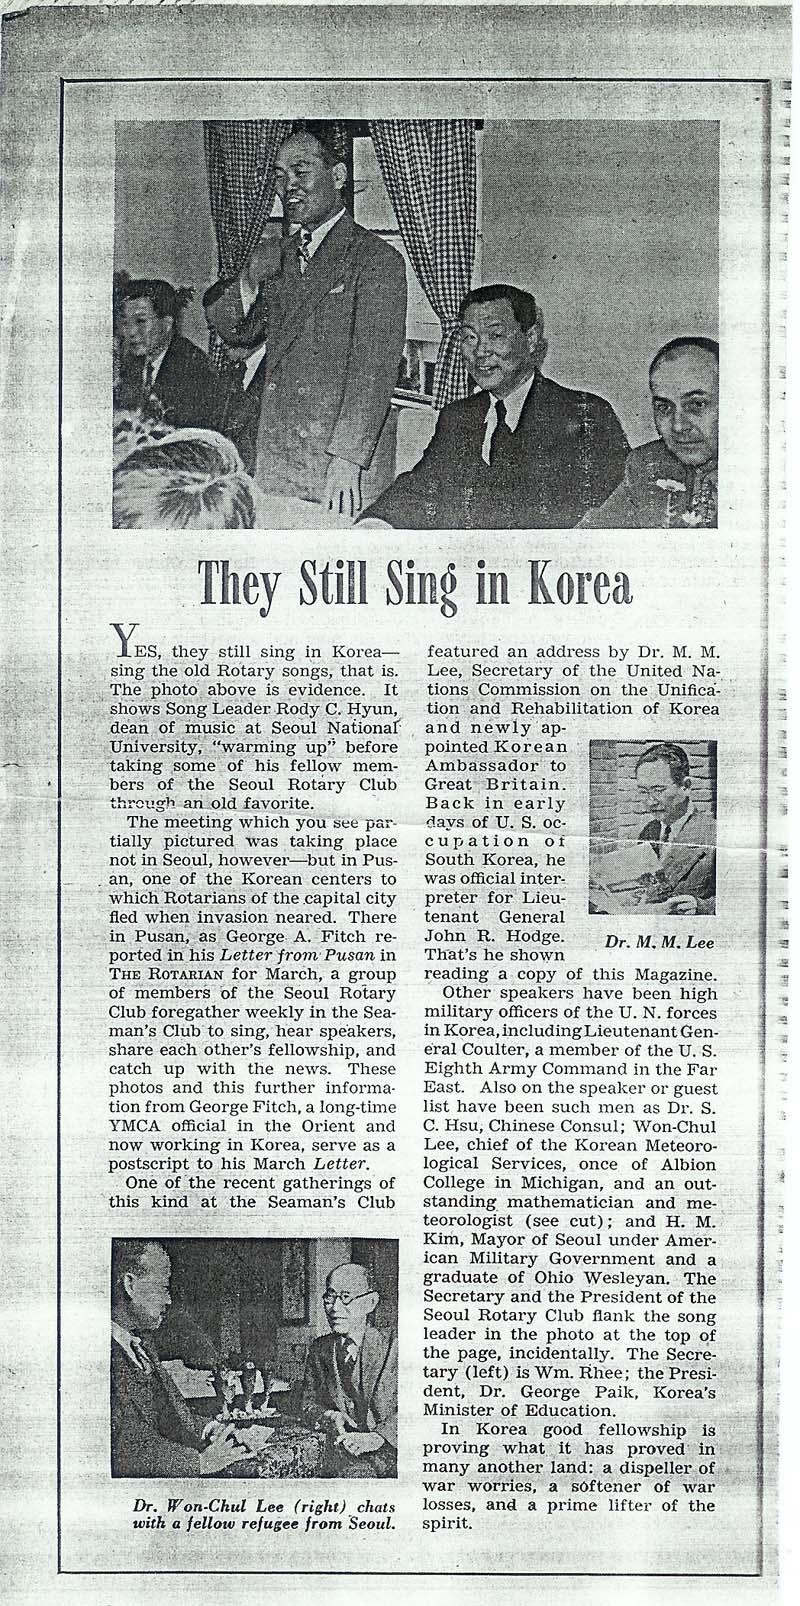 This is a Seoul newspaper article written during the Korean War detailing the continuing meetings held by the Seoul Rotary Club in Busan. When North Korean invaded Seoul, many of Seoul¡¯s citizens fled to Busan, including most members of the Seoul Rotary Club. It was also during this time that the Seoul Rotary Club members helped to launch the Busan Rotary Club. Note the picture of Dr. M.M. Lee, who is the father of Rotarian Kyung.